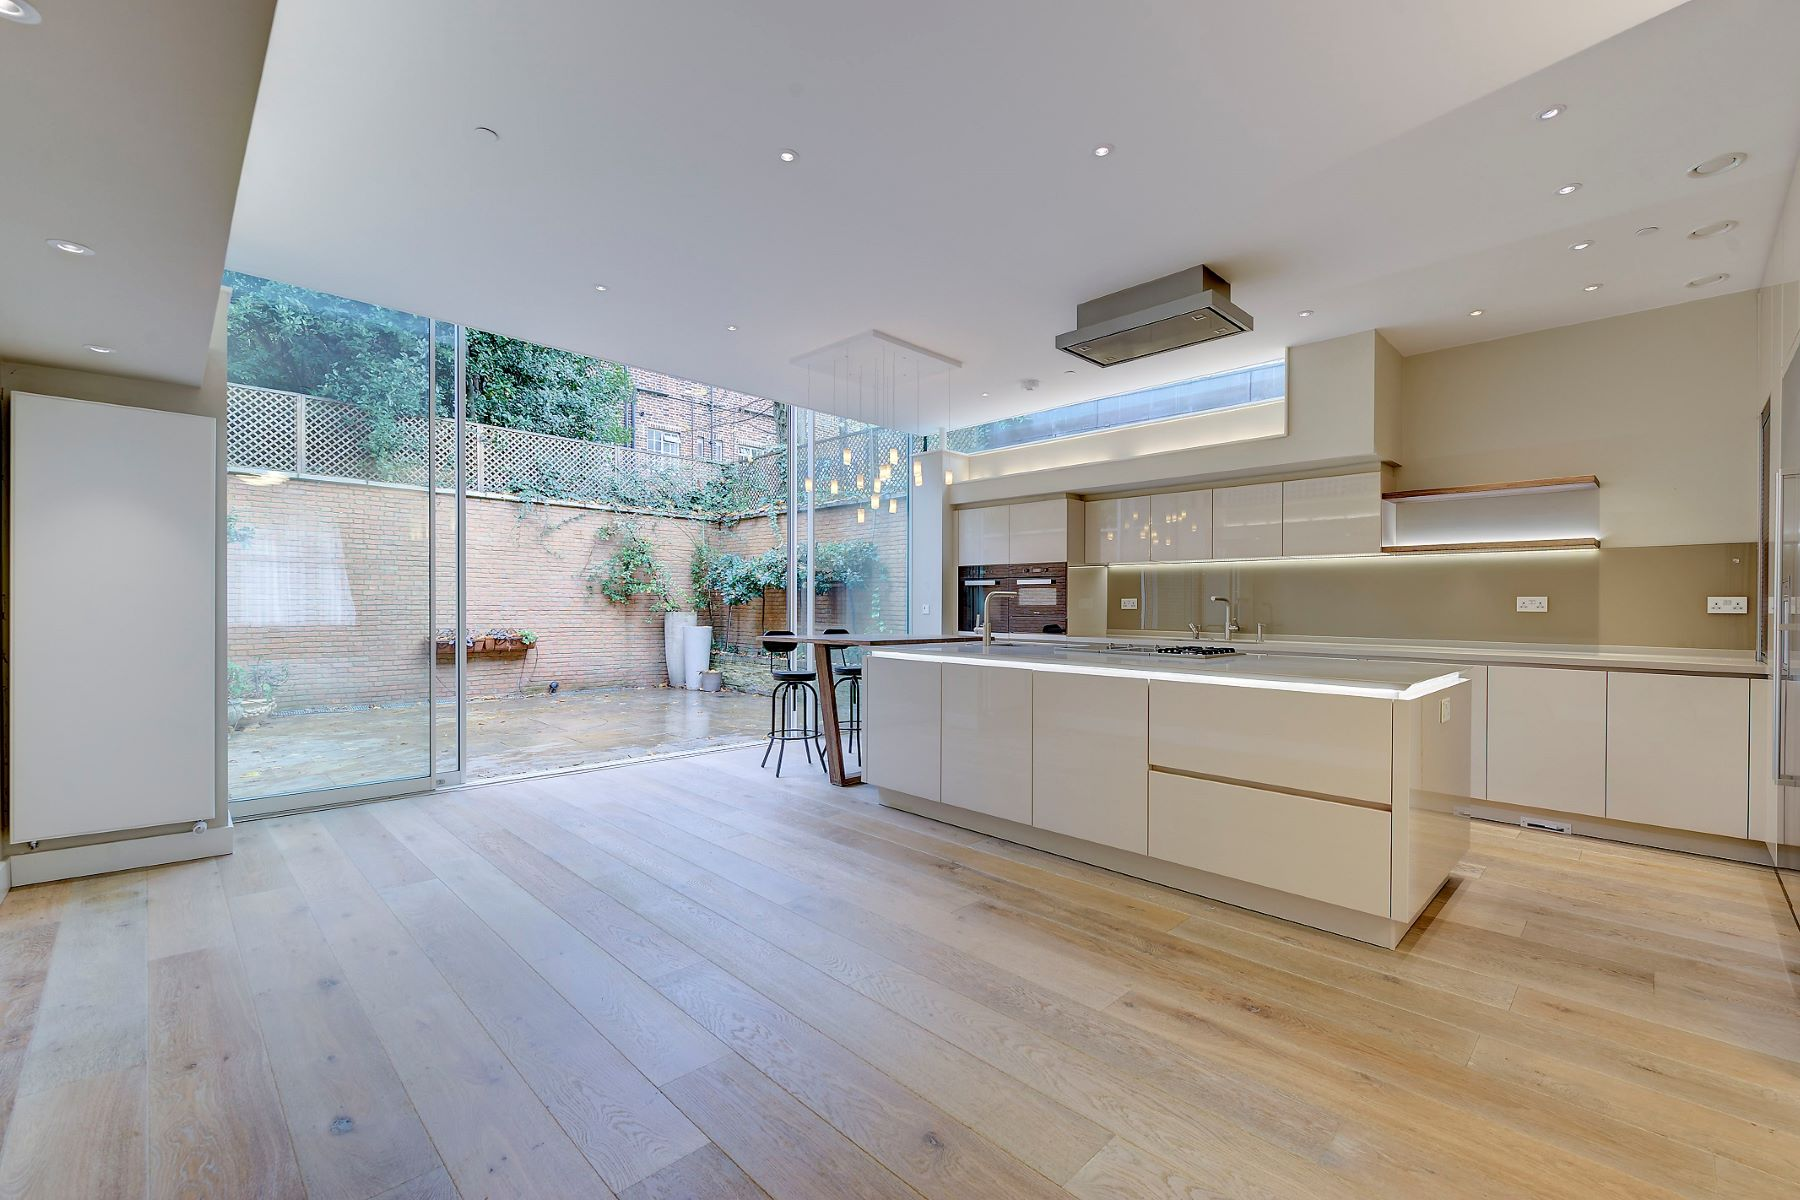 Property for Sale at Glenilla Road, Belsize Park 1 Glenilla road London, England NW3 4AJ United Kingdom